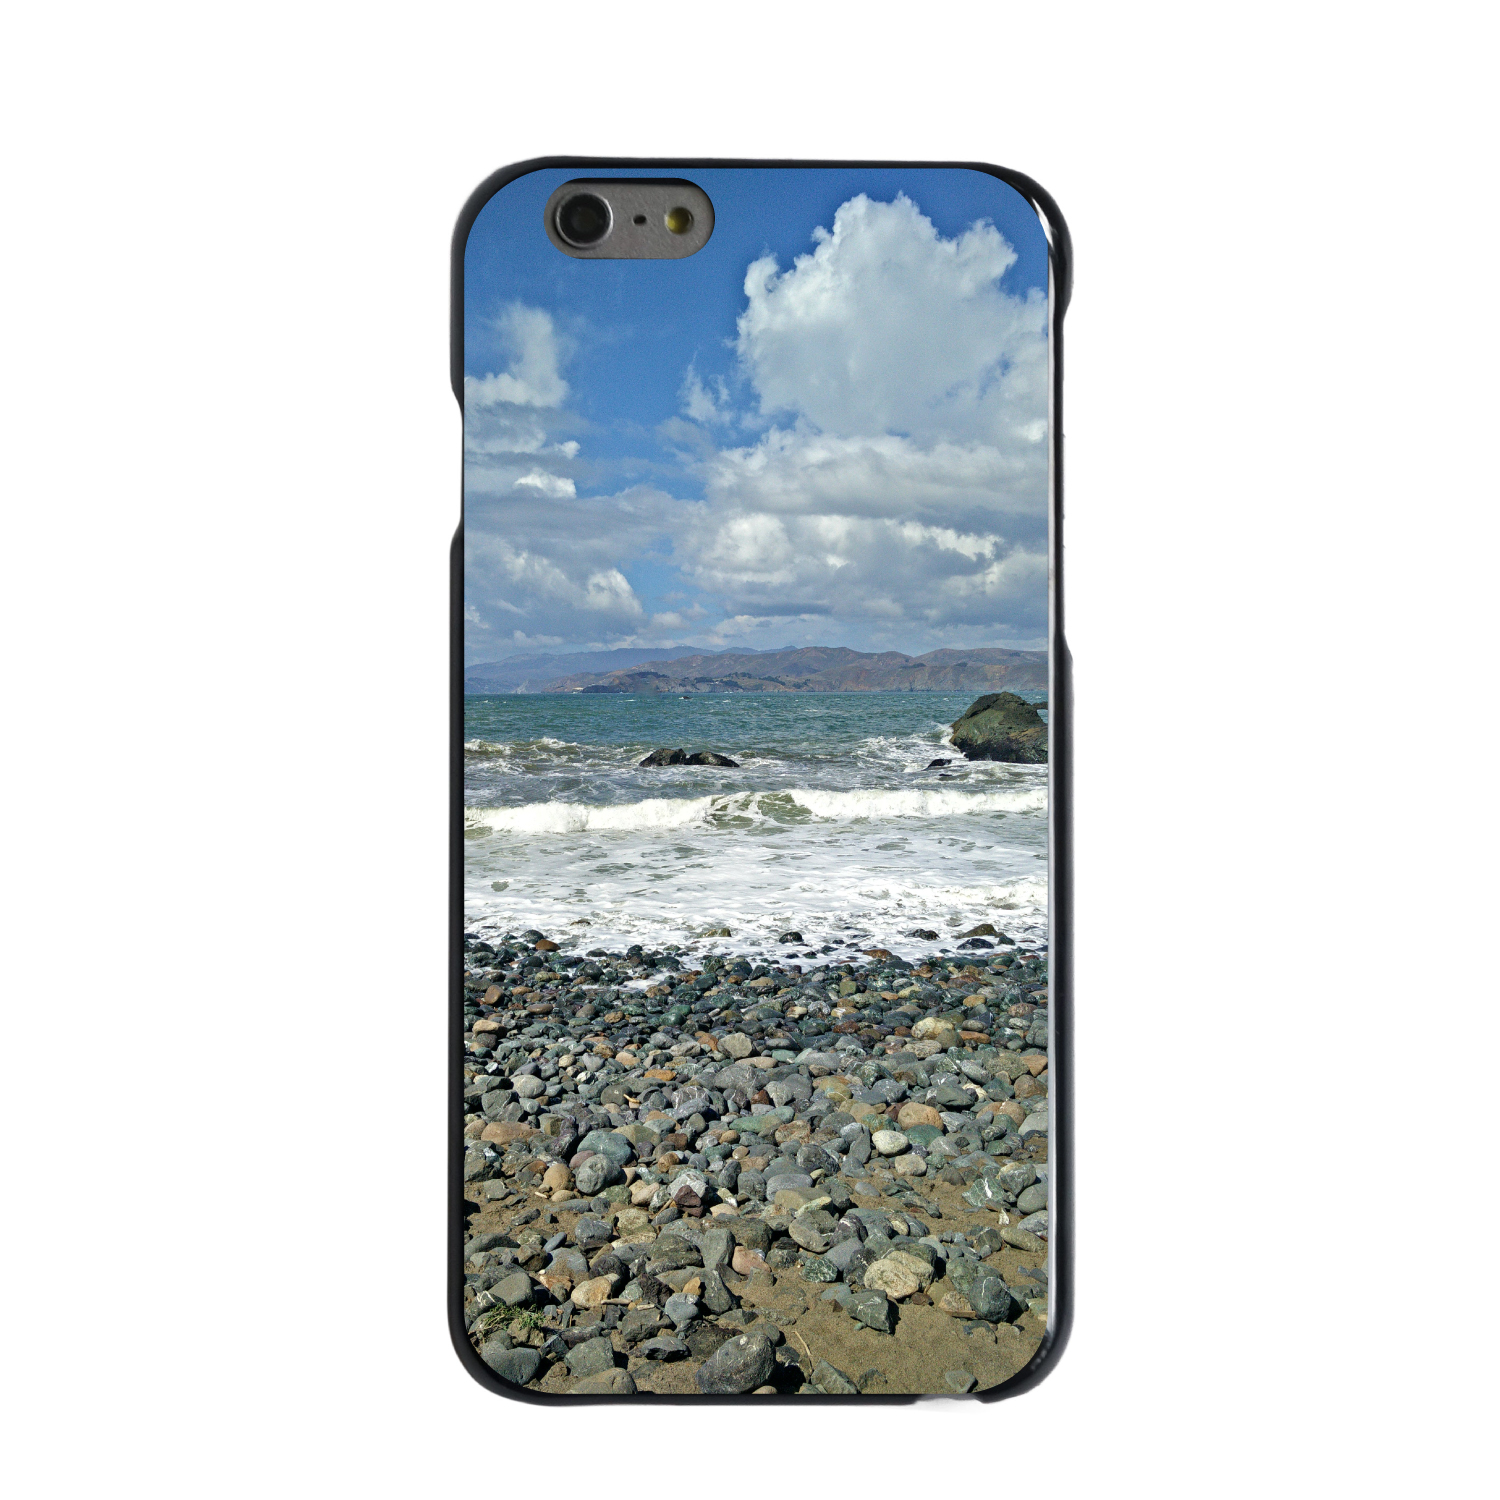 "CUSTOM Black Hard Plastic Snap-On Case for Apple iPhone 7 PLUS / 8 PLUS (5.5"" Screen) - Land's End Pebble Beach"